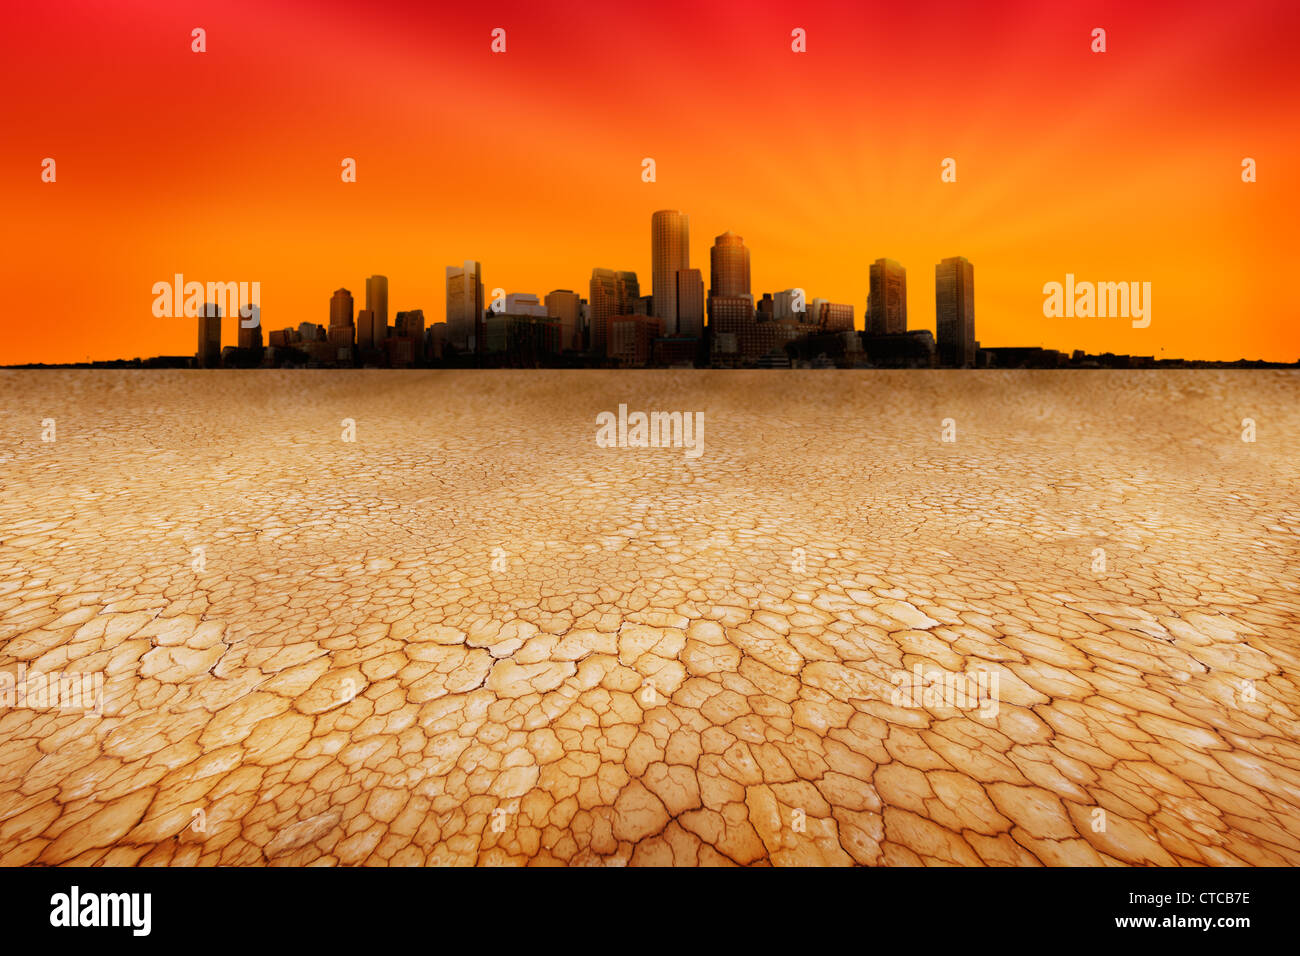 Water shortages encroaching on cities - Stock Image